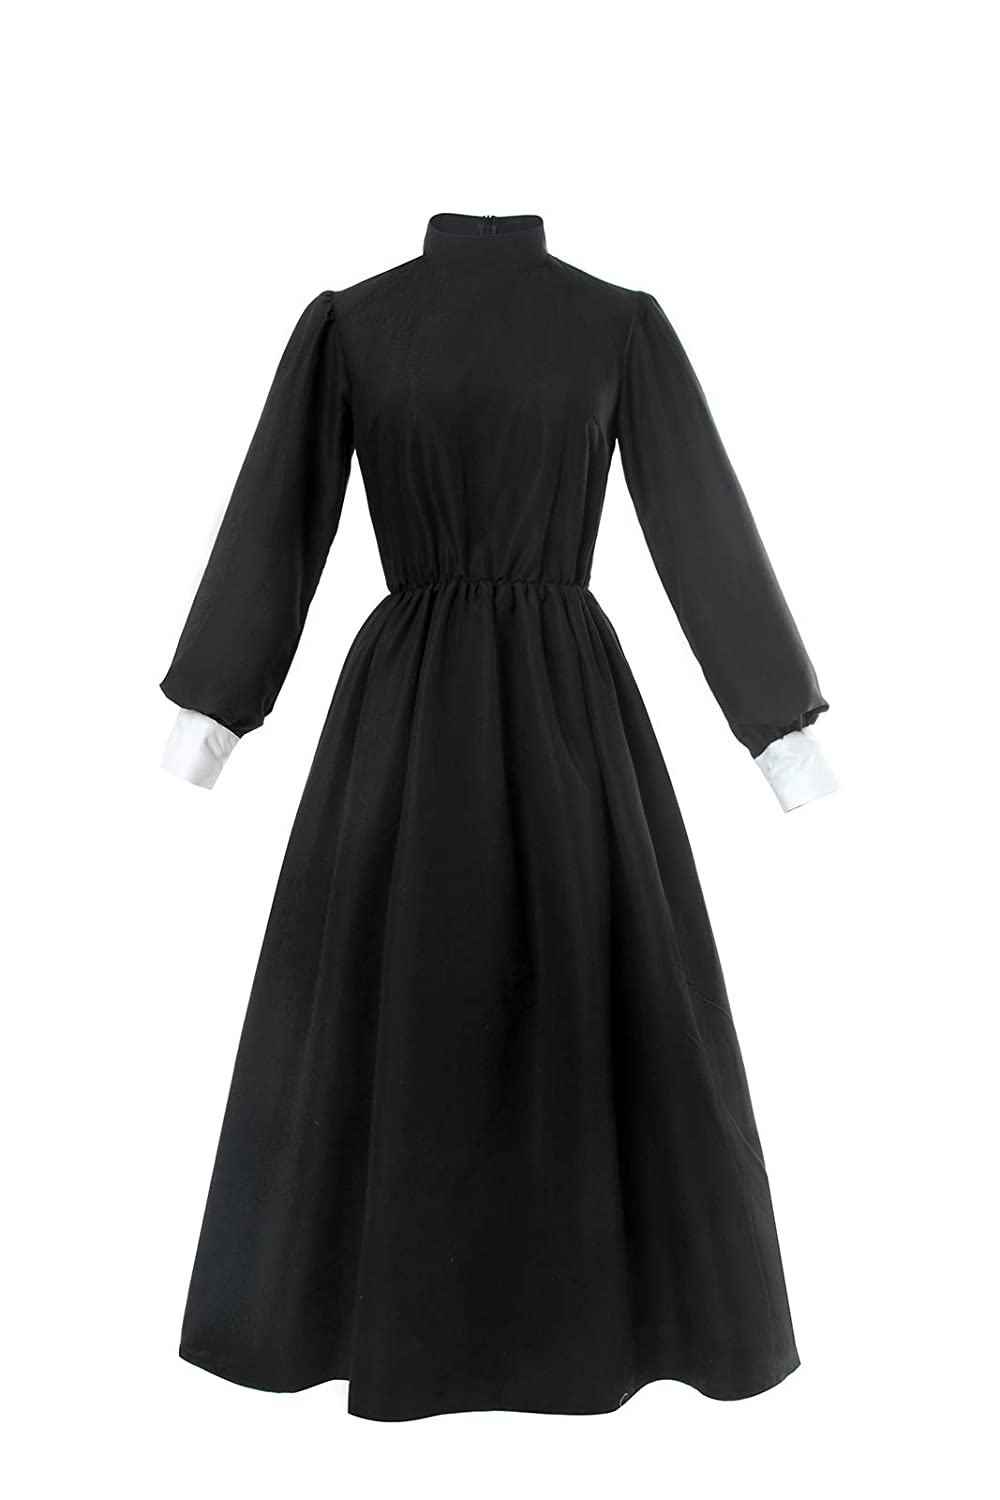 Victorian Clothing, Costumes & 1800s Fashion 1890 Pioneer Women Costume Floral Prairie Dress Deluxe Colonial Dress Laura Ingalls Costume ROLECOS  $35.99 AT vintagedancer.com